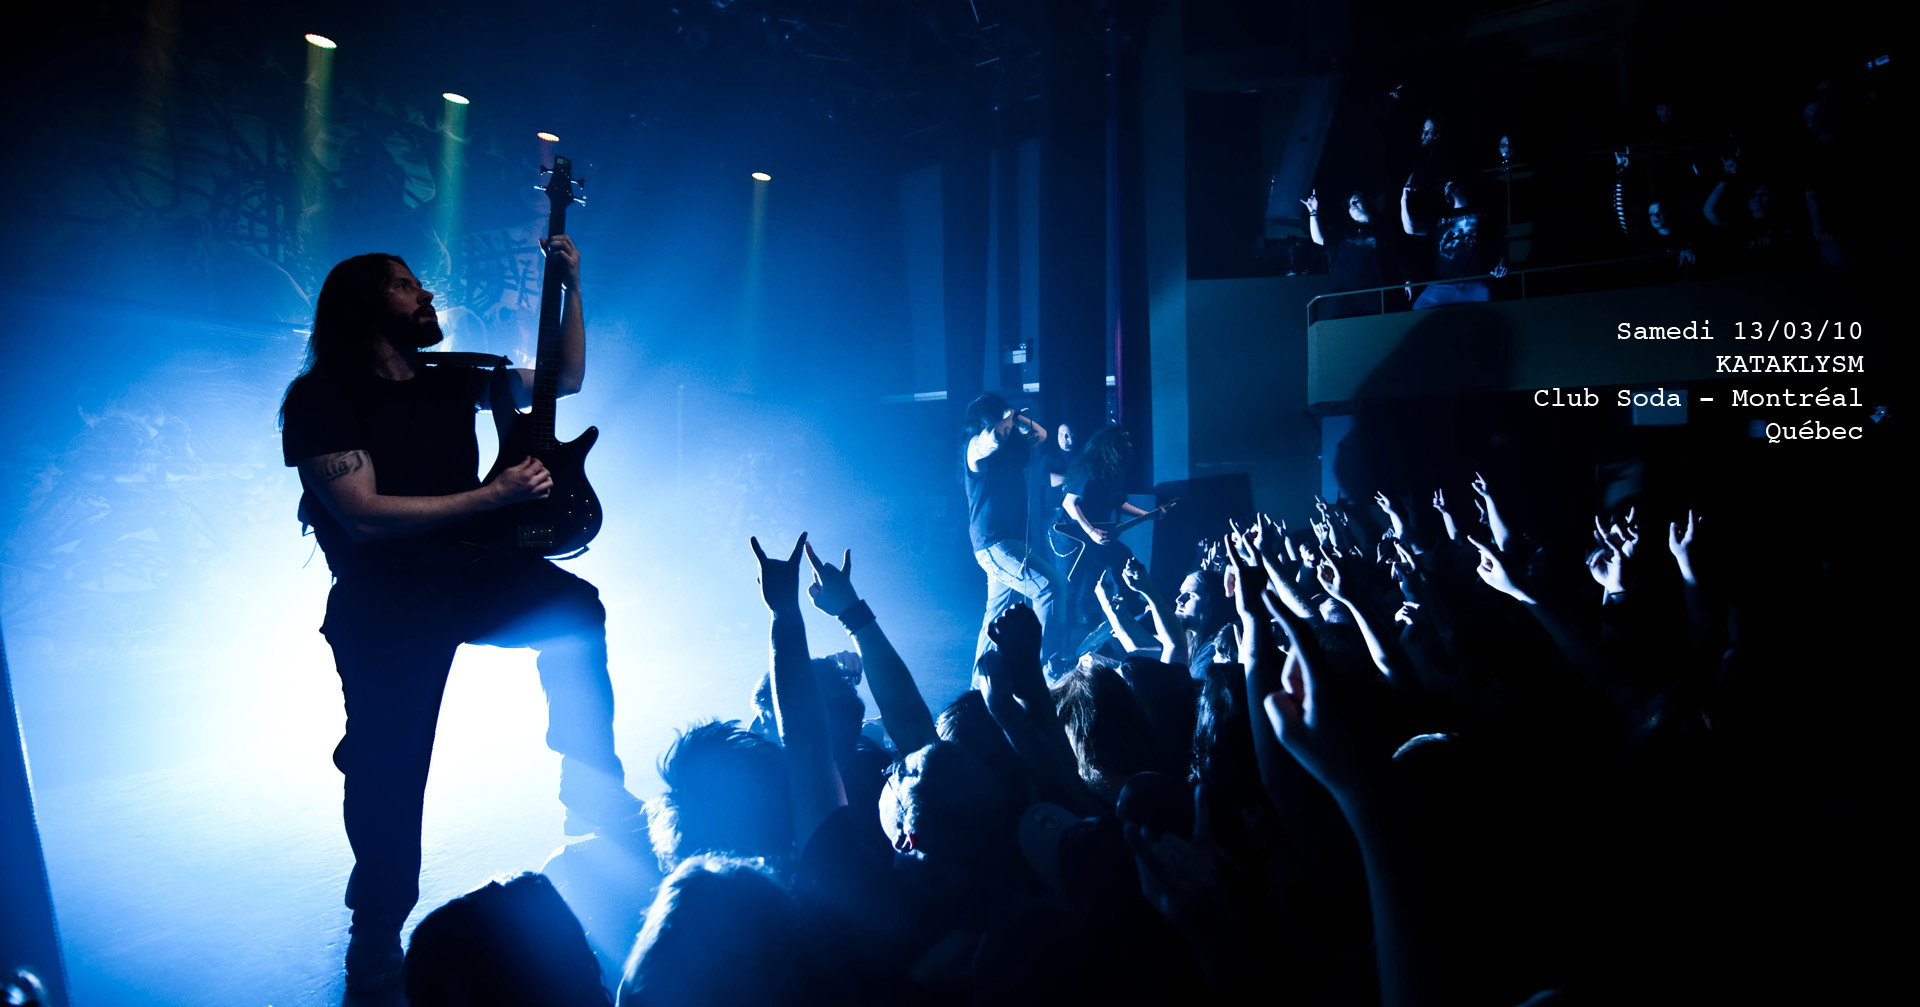 metal heavy hard rock concert concerts crowd a wallpaper background 1920x1007